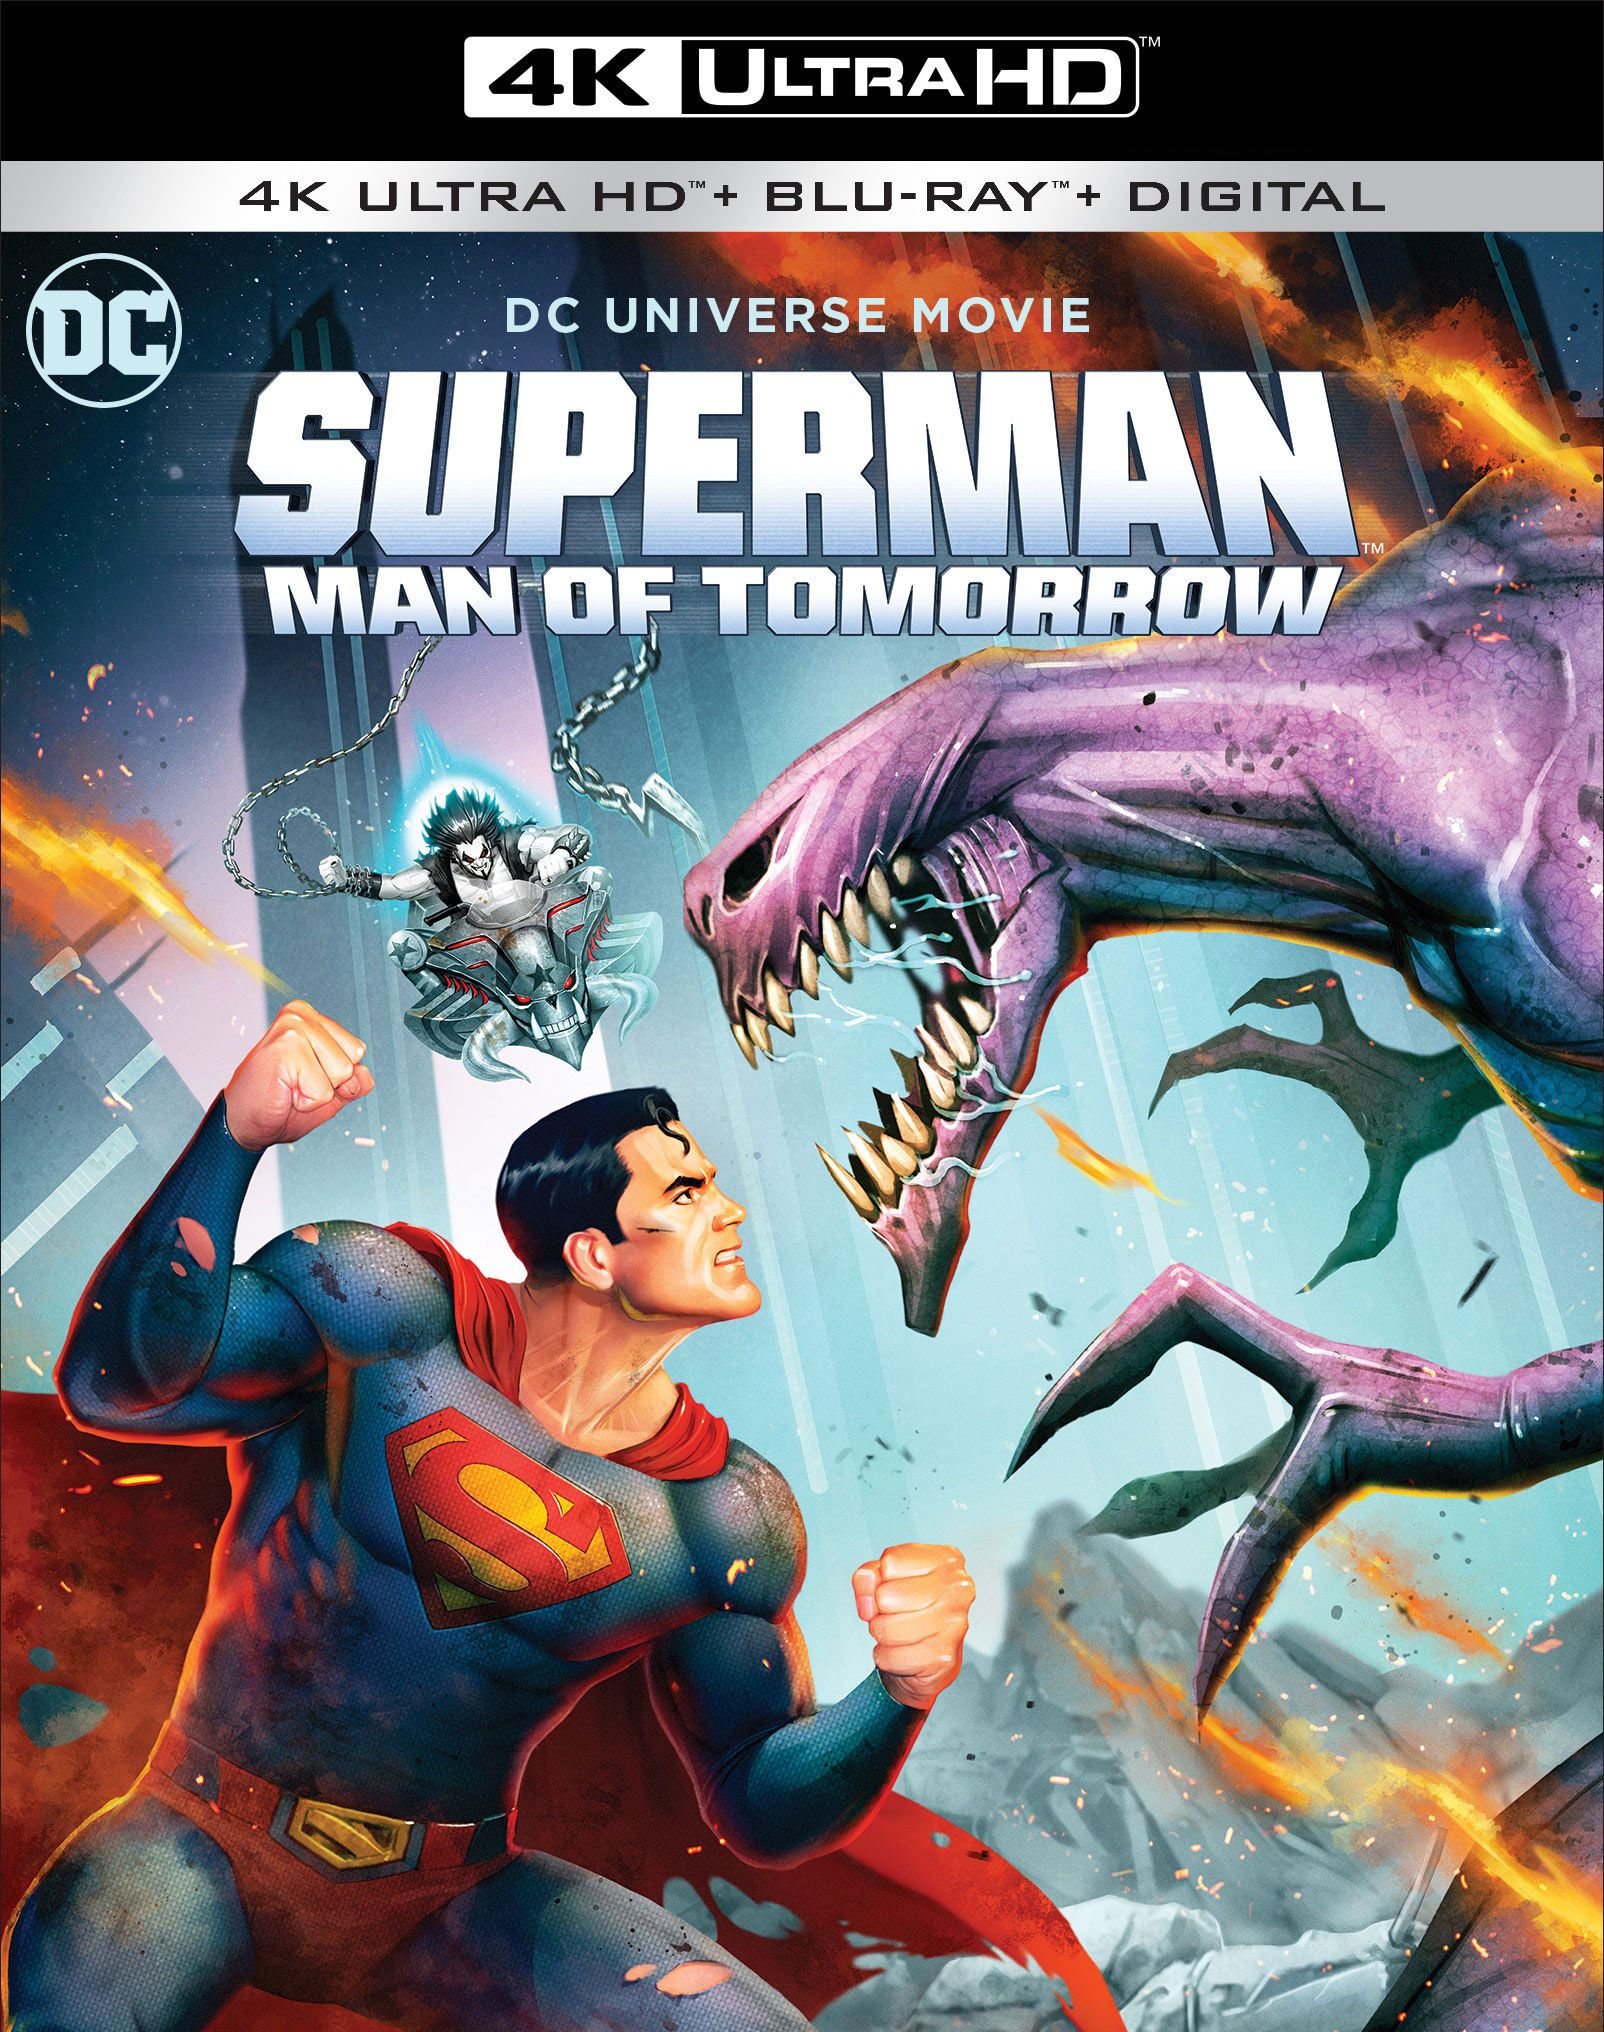 Superman Man Of Tomorrow Trailer Teases Future Of Dc Universe Movies Collider